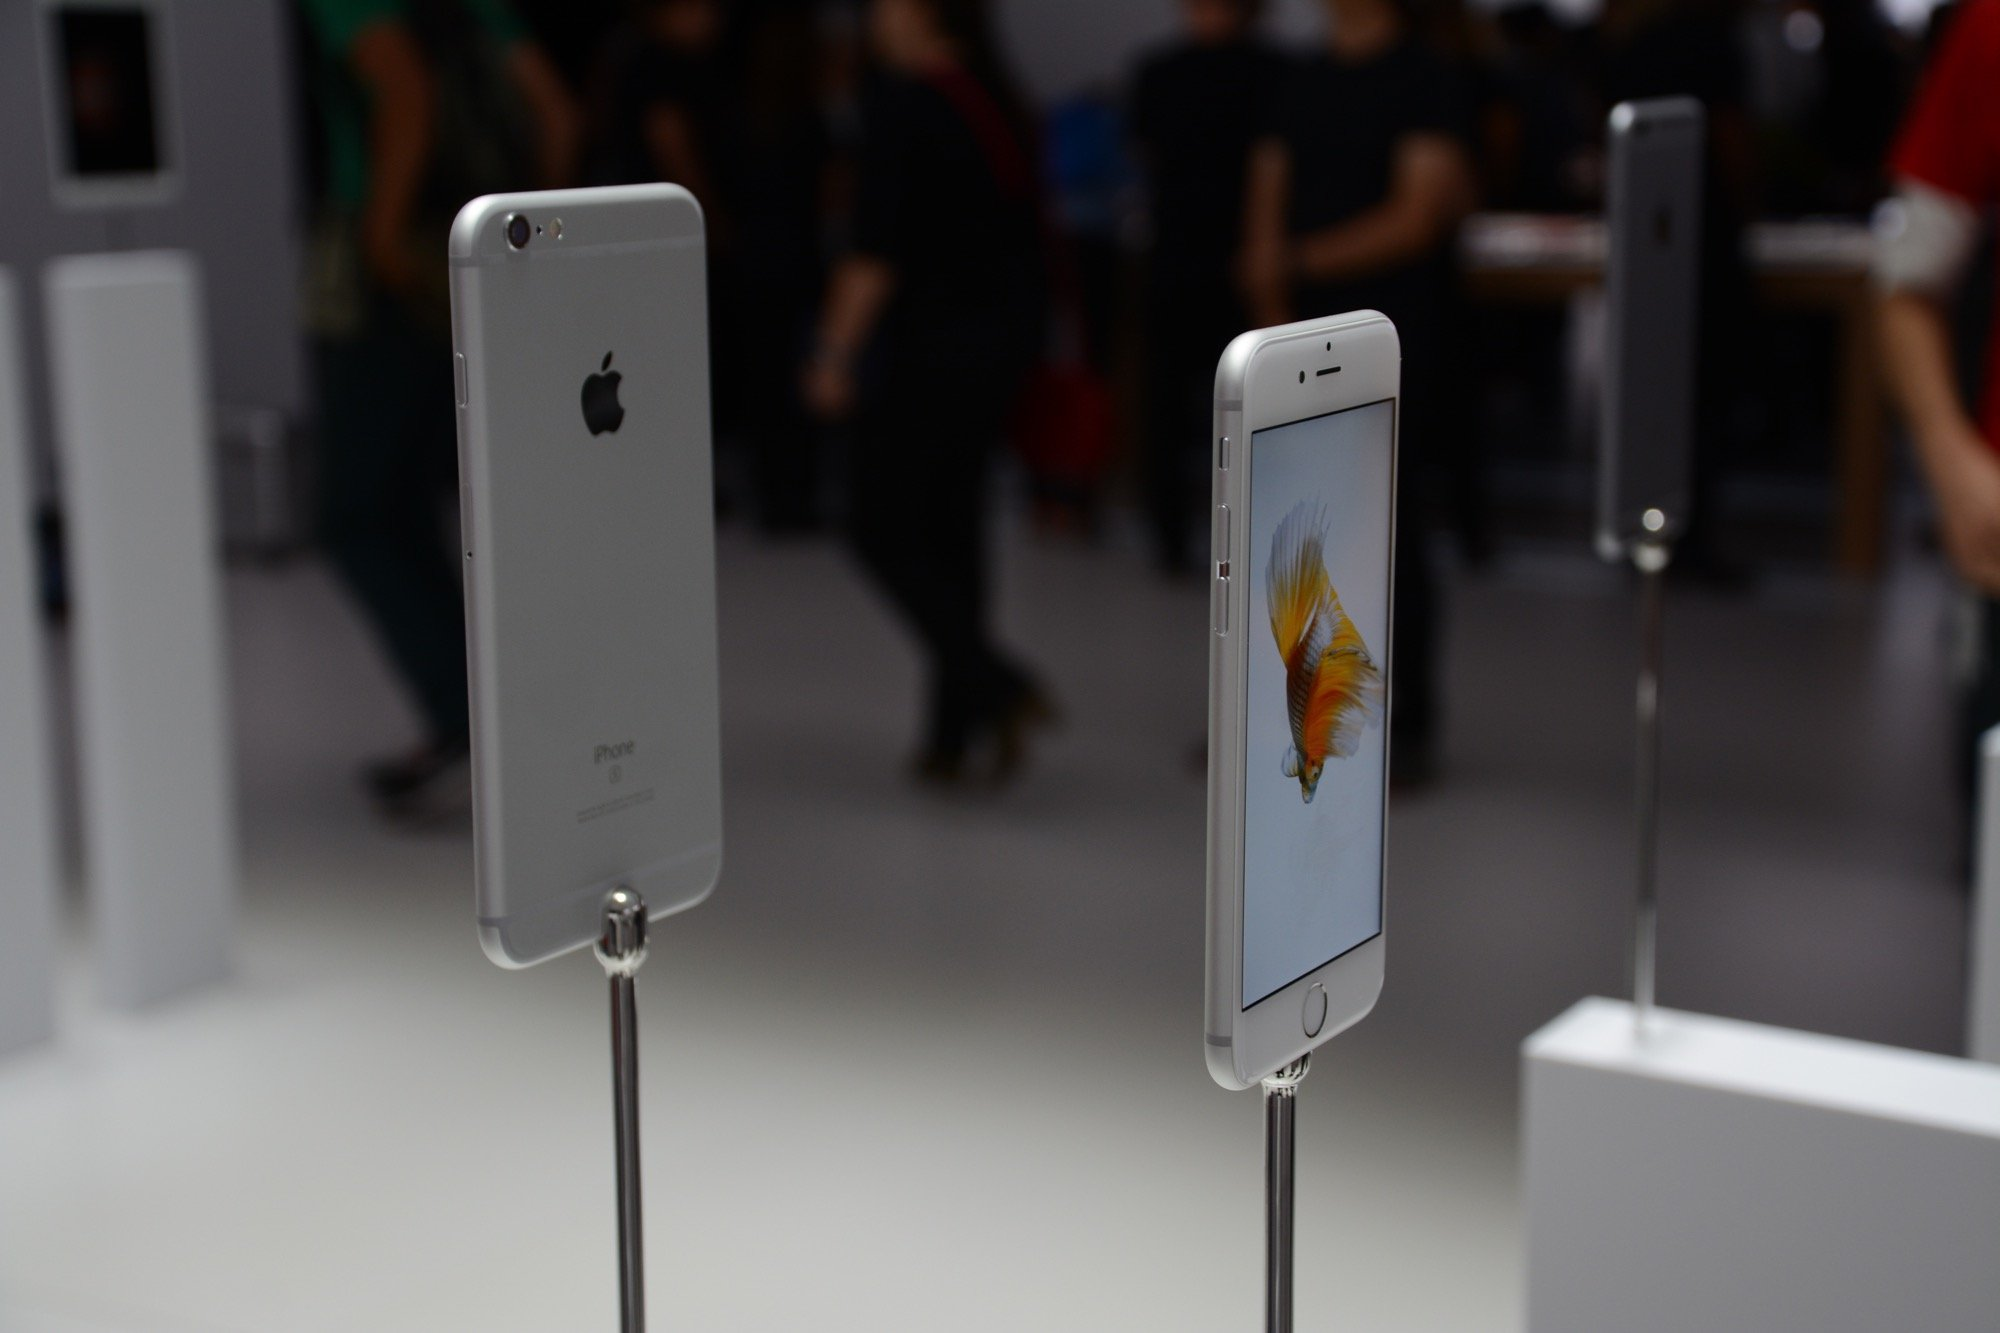 Best iPhone 6S and 6S Plus deals - EE, Three, Vodafone ...